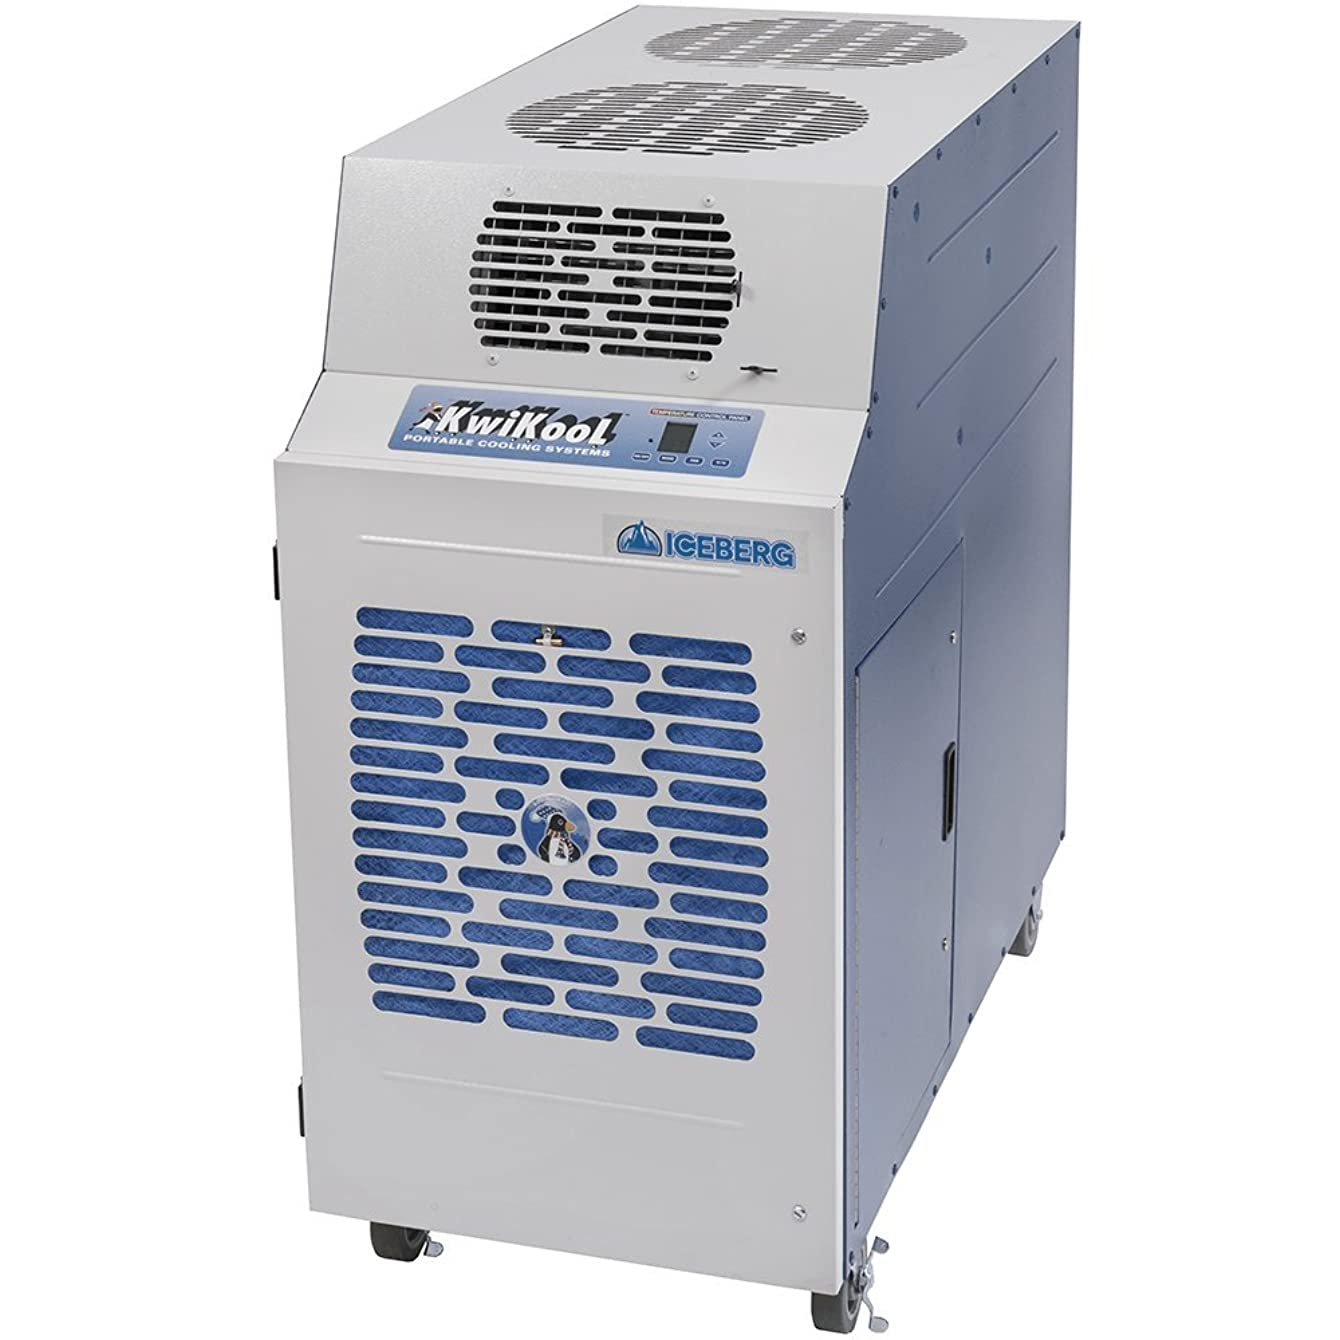 KwiKool KIB2411 Air-Cooled Commercial Portable Air Conditioner